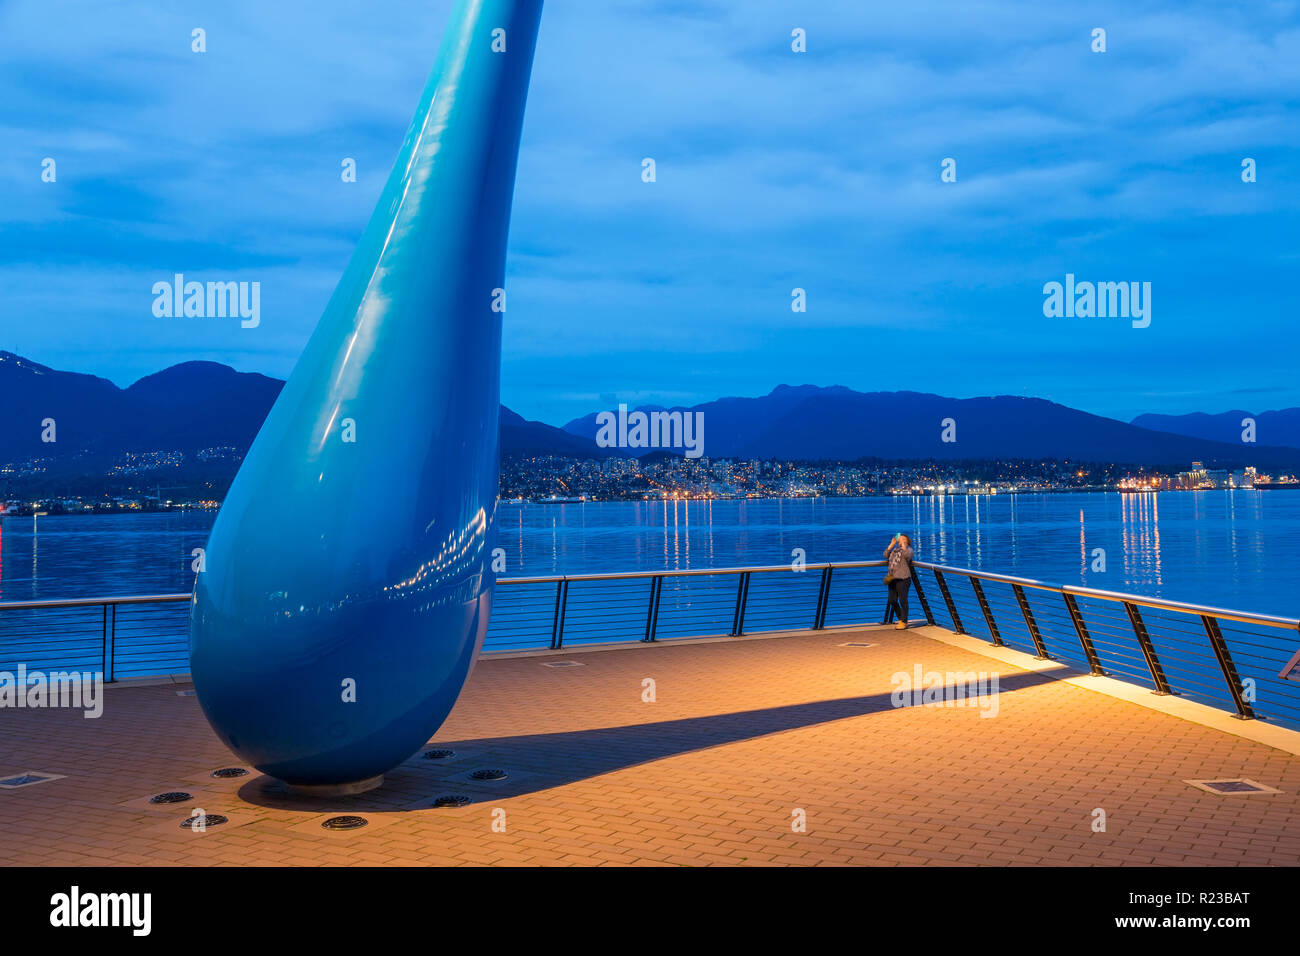 Vancouver, Canada - September 2015: Sculpture titled 'The Drop' Vancouver Convention Center West, Vancouver, British Columbia, Canada Stock Photo